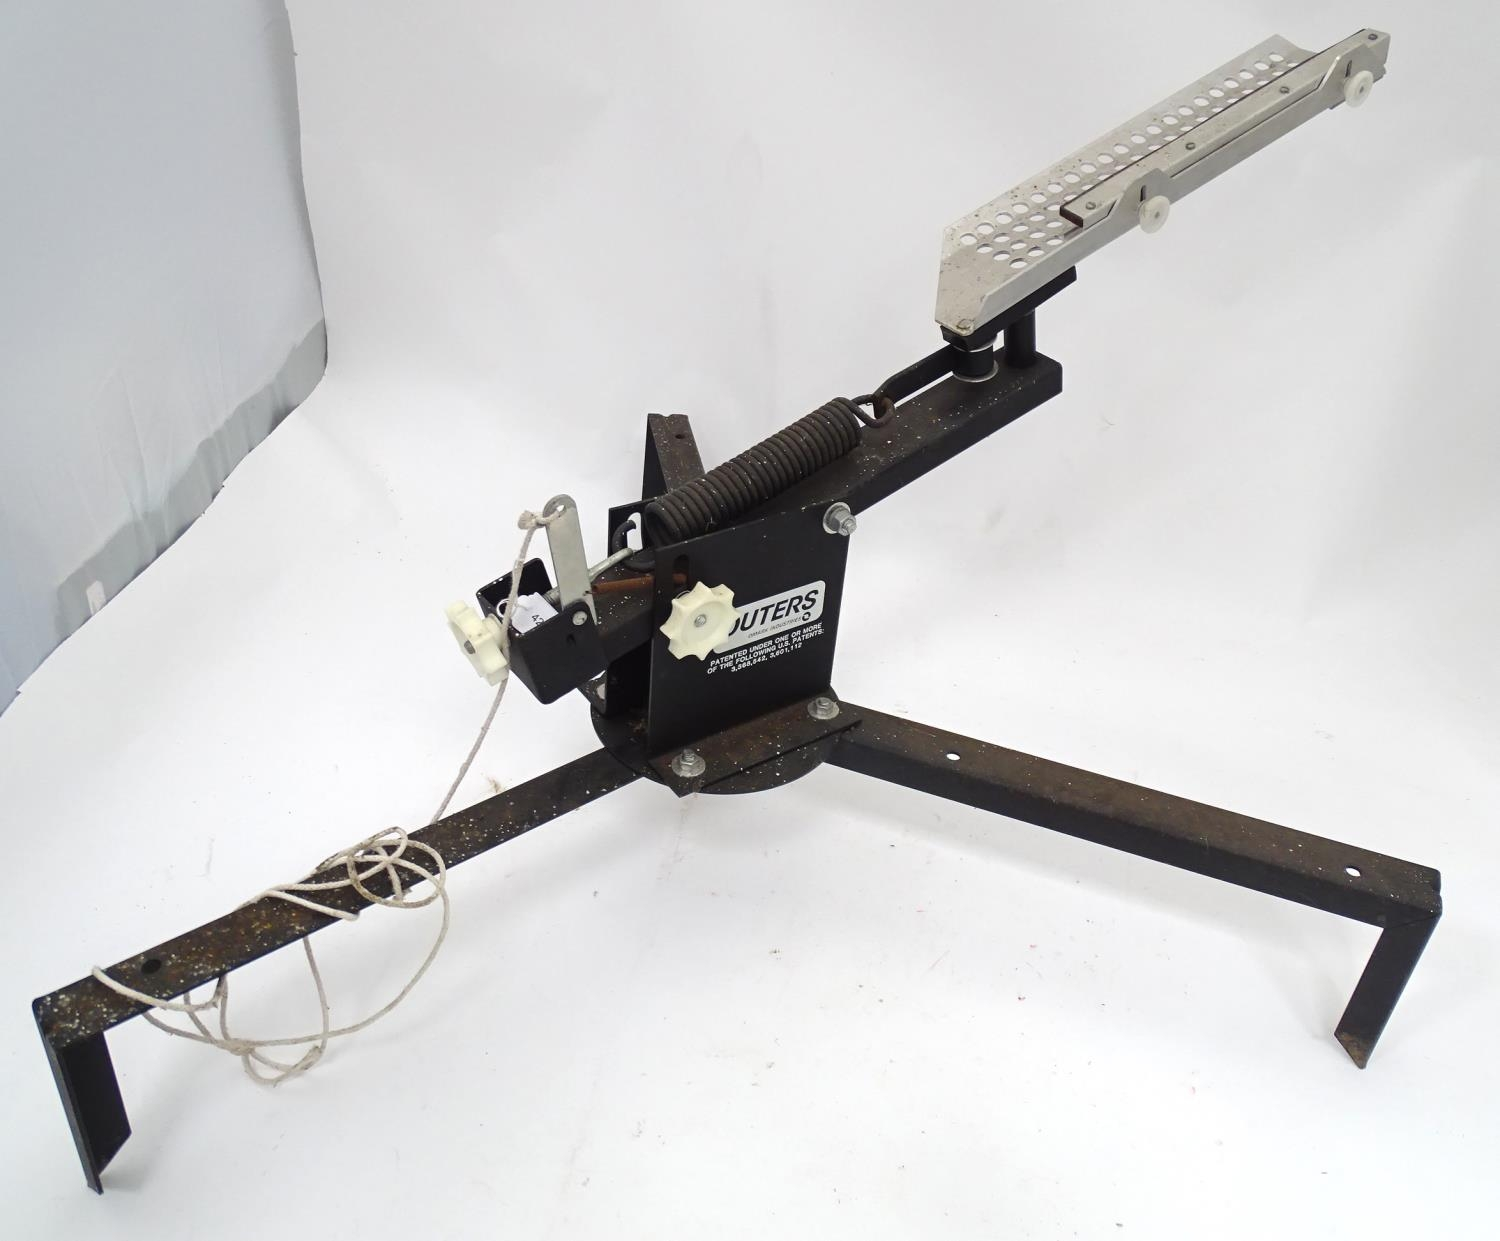 An American clay pigeon trap, maker Outers Please Note - we do not make reference to the condition - Image 2 of 5